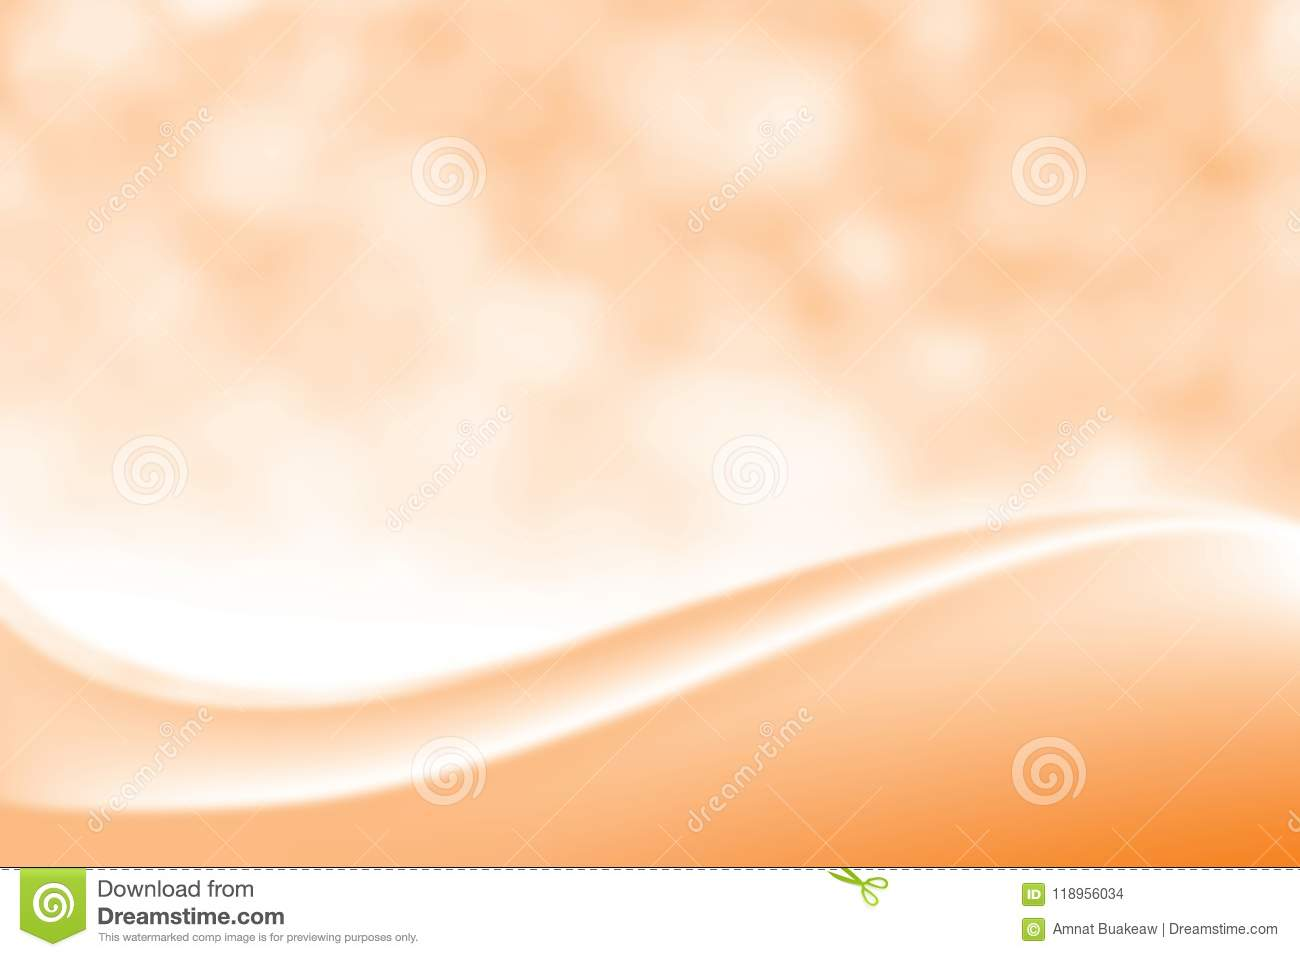 Blurred Smooth orange elegant soft beauty background, Luxurious Cosmetic backdrop Bokeh soft light shade, Gradient colour sweet